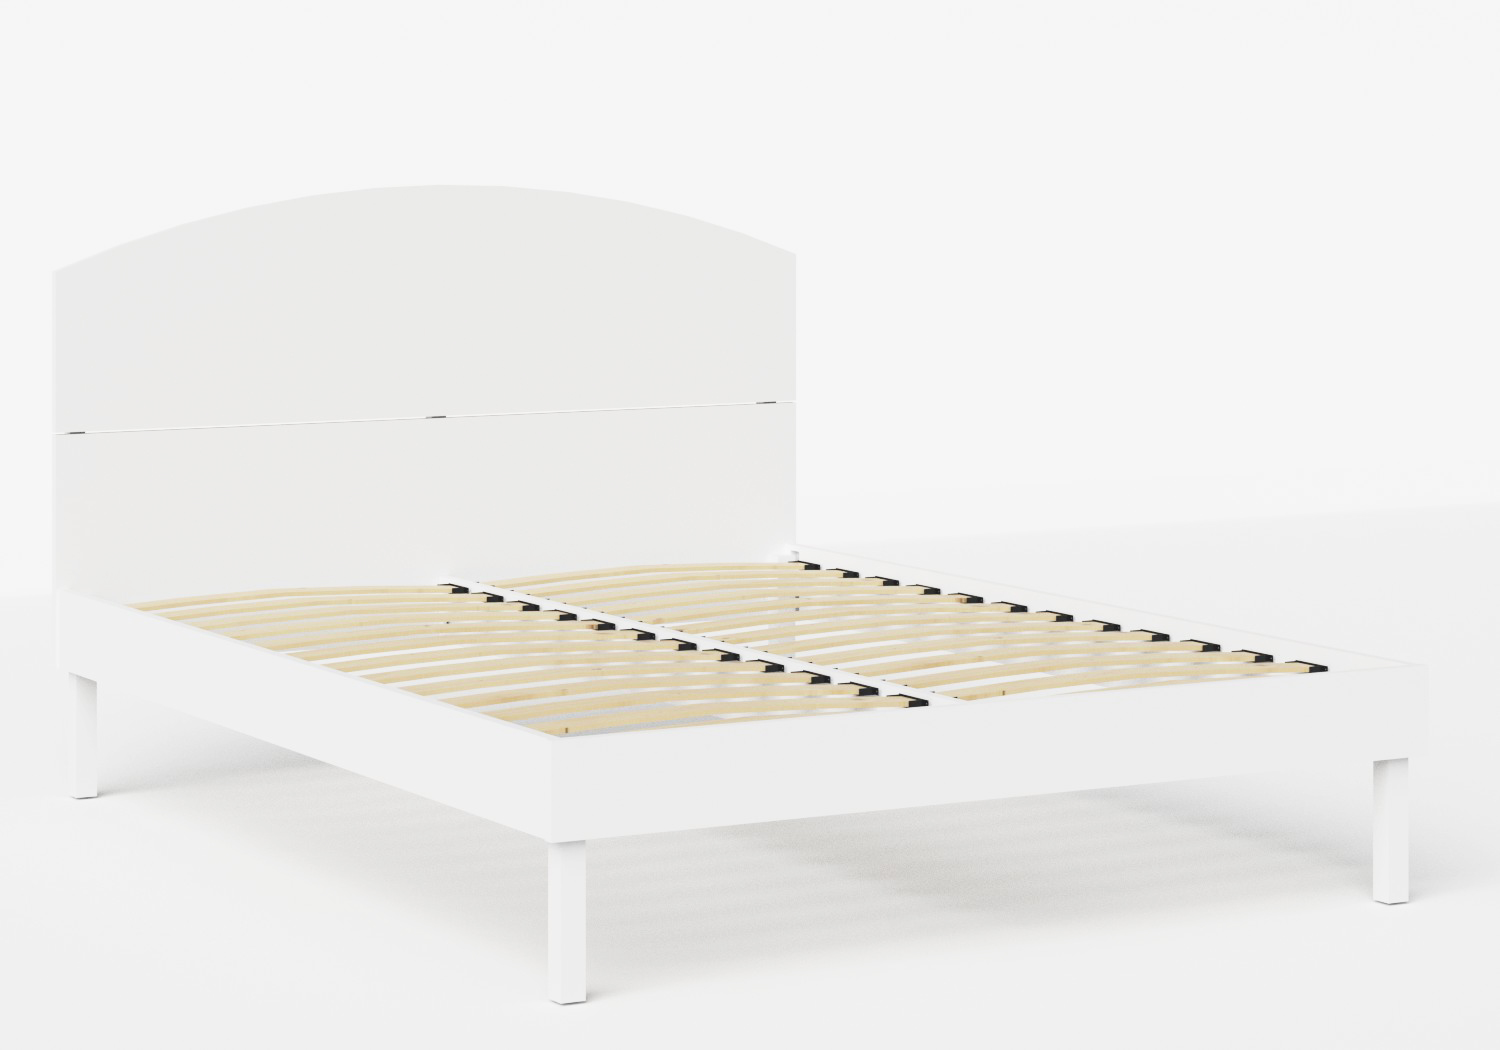 Okawa Wood Bed in White shown with slatted frame